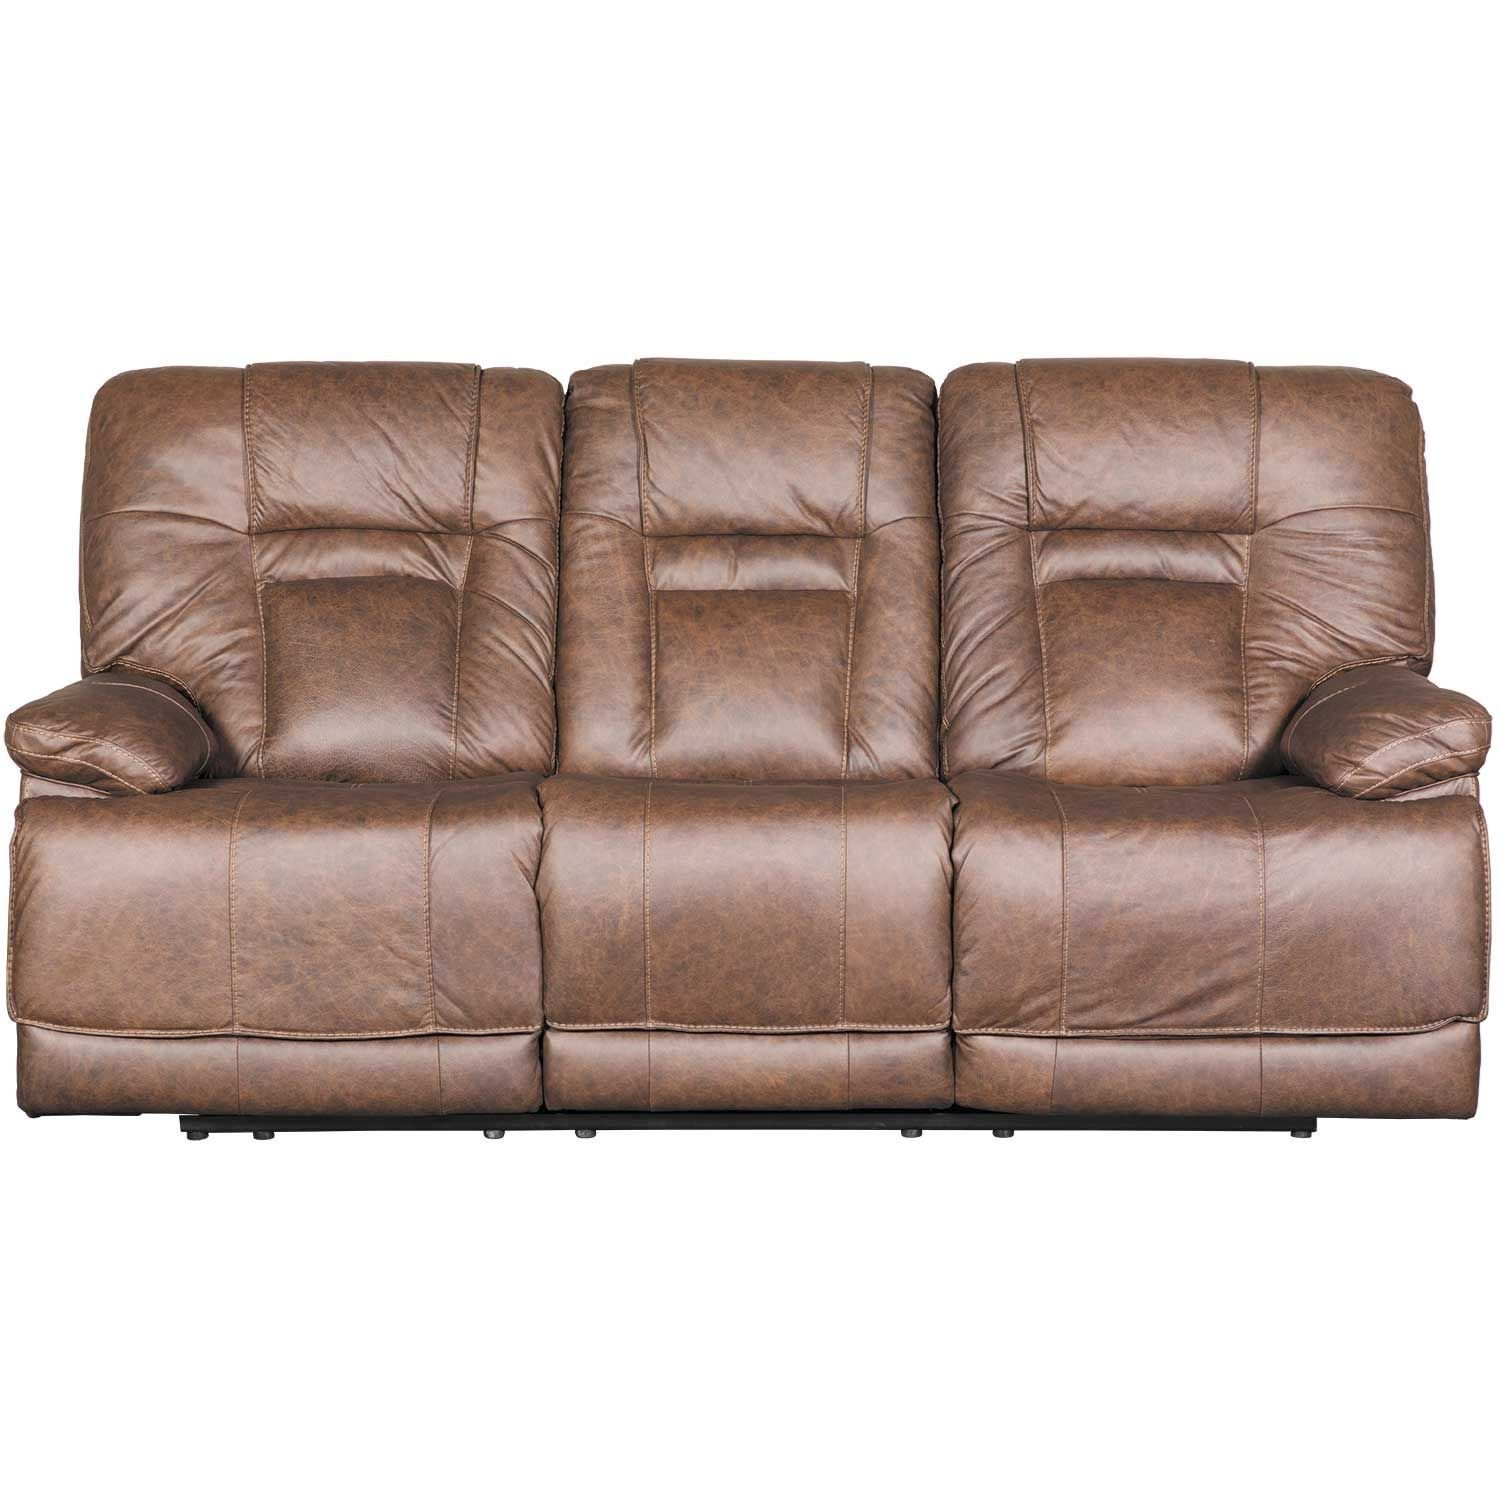 Wurstrow Umber Italian Leather Power Reclining Sofa U5460315